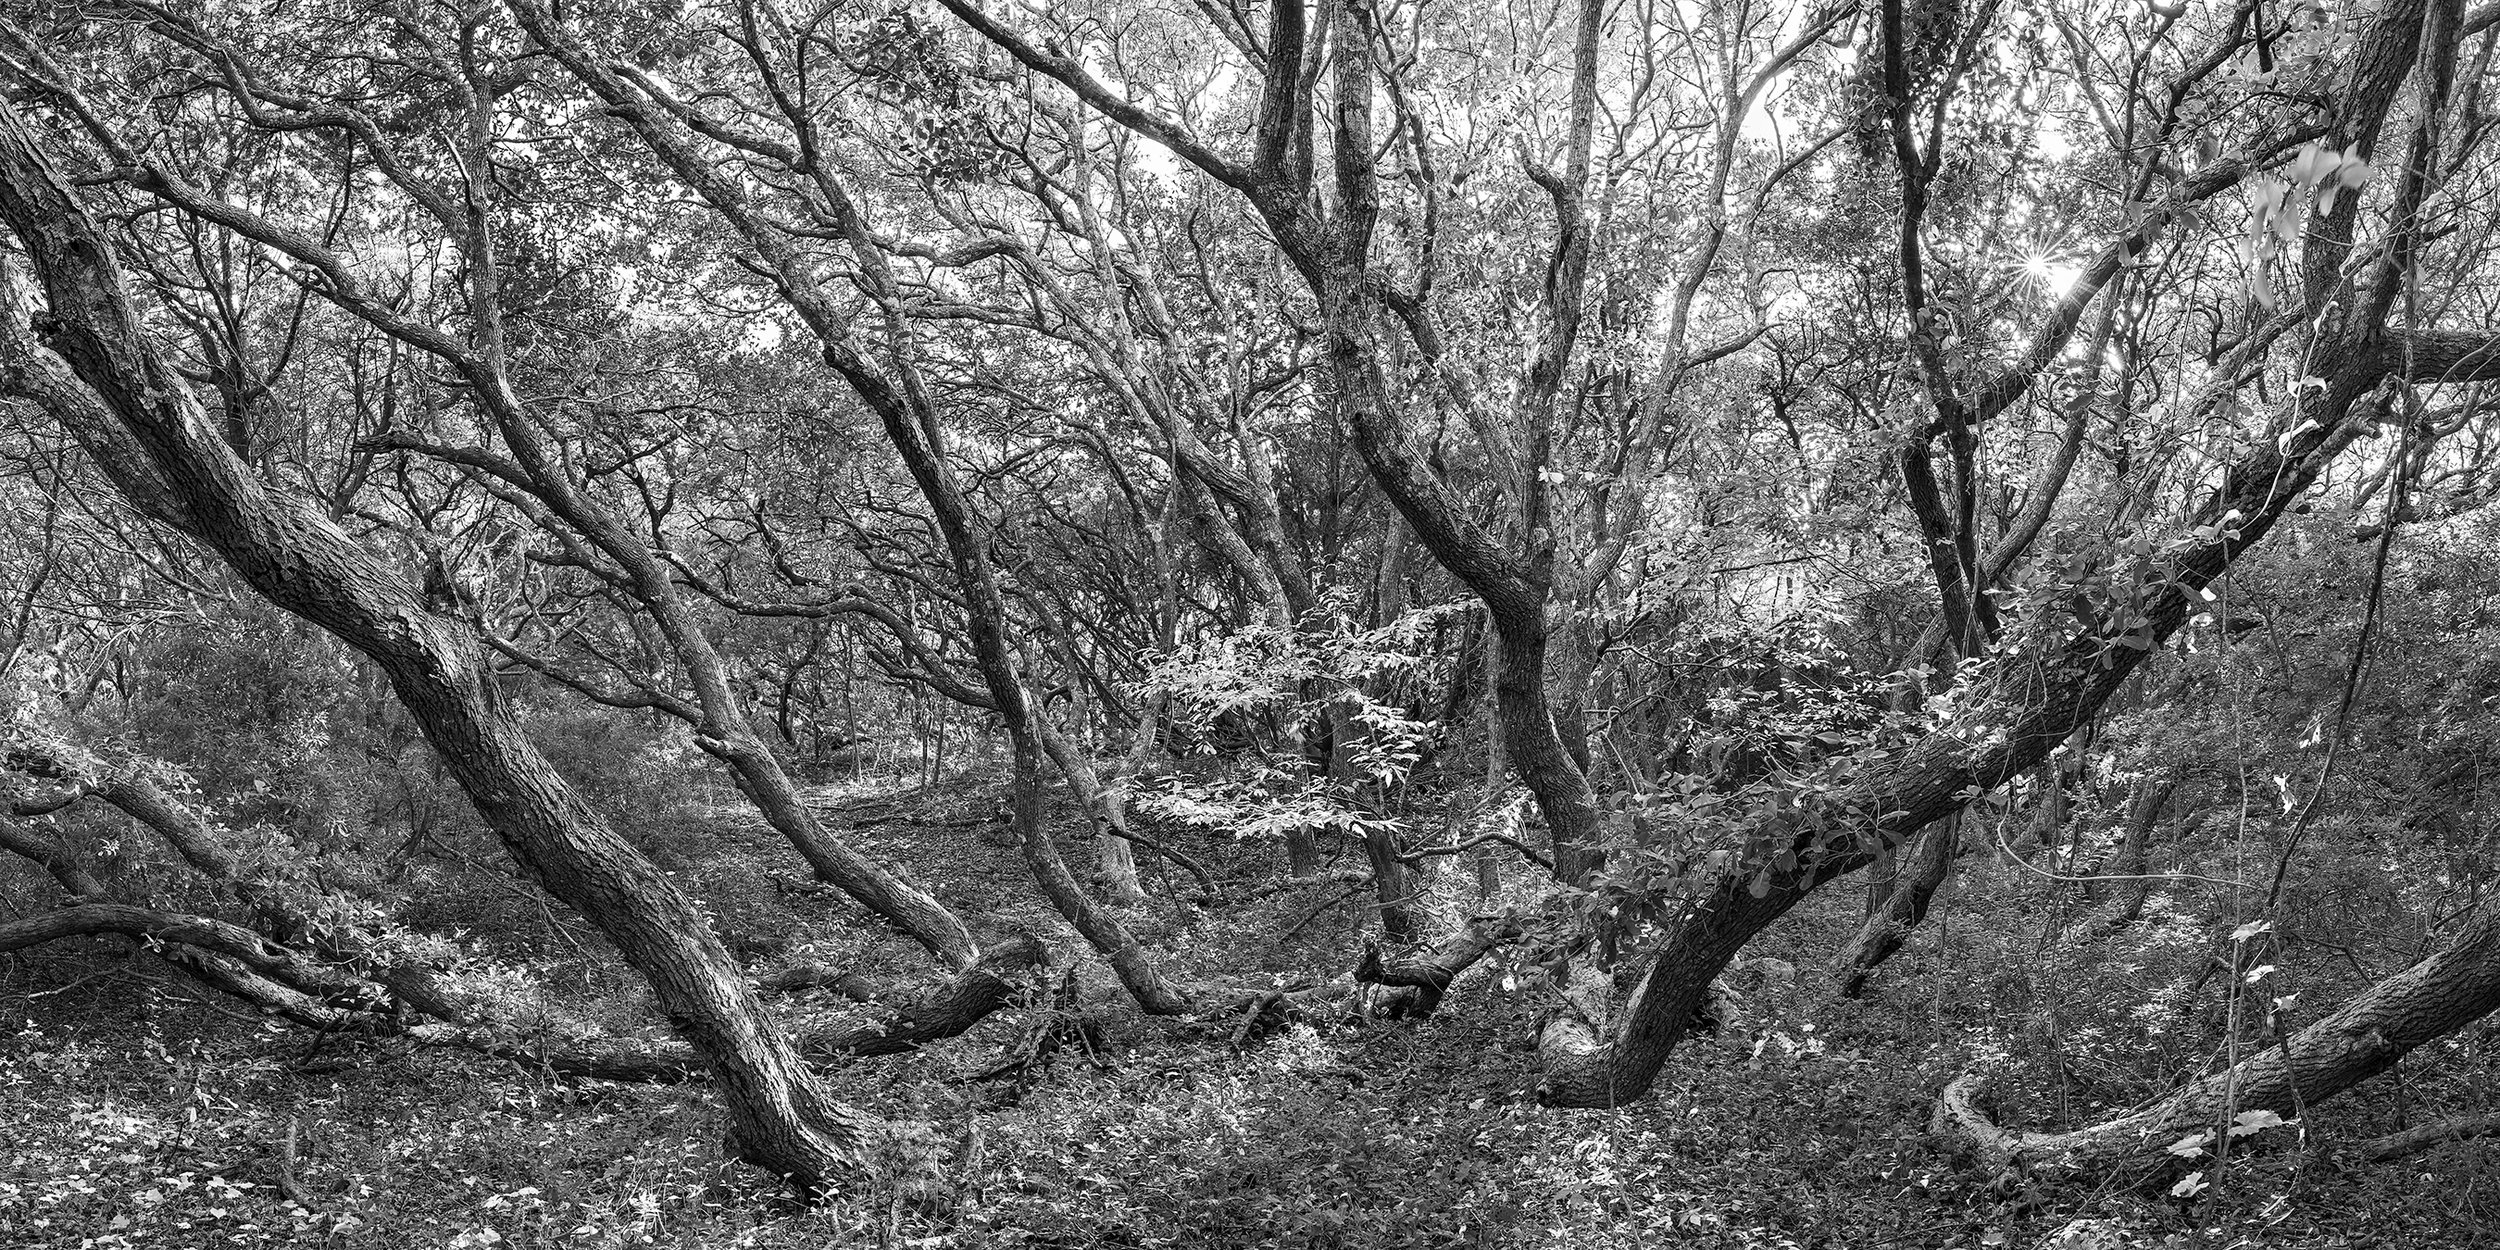 Panorama of old growth maritime forest seen along the Elliott Coues Nature Trail at Fort Macon State Park